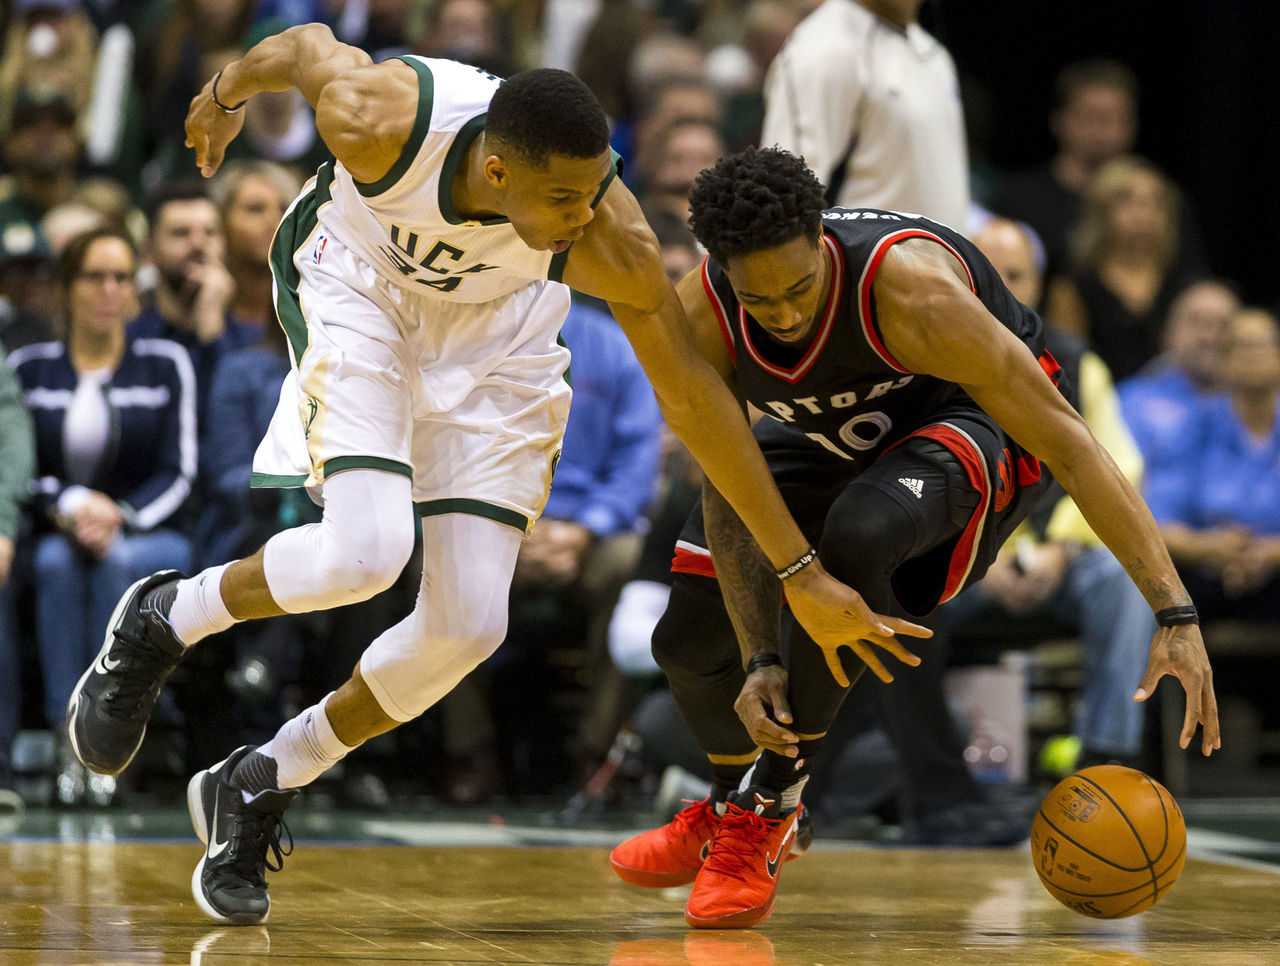 Cropped 2017 04 28t011041z 1905888236 nocid rtrmadp 3 nba playoffs toronto raptors at milwaukee bucks